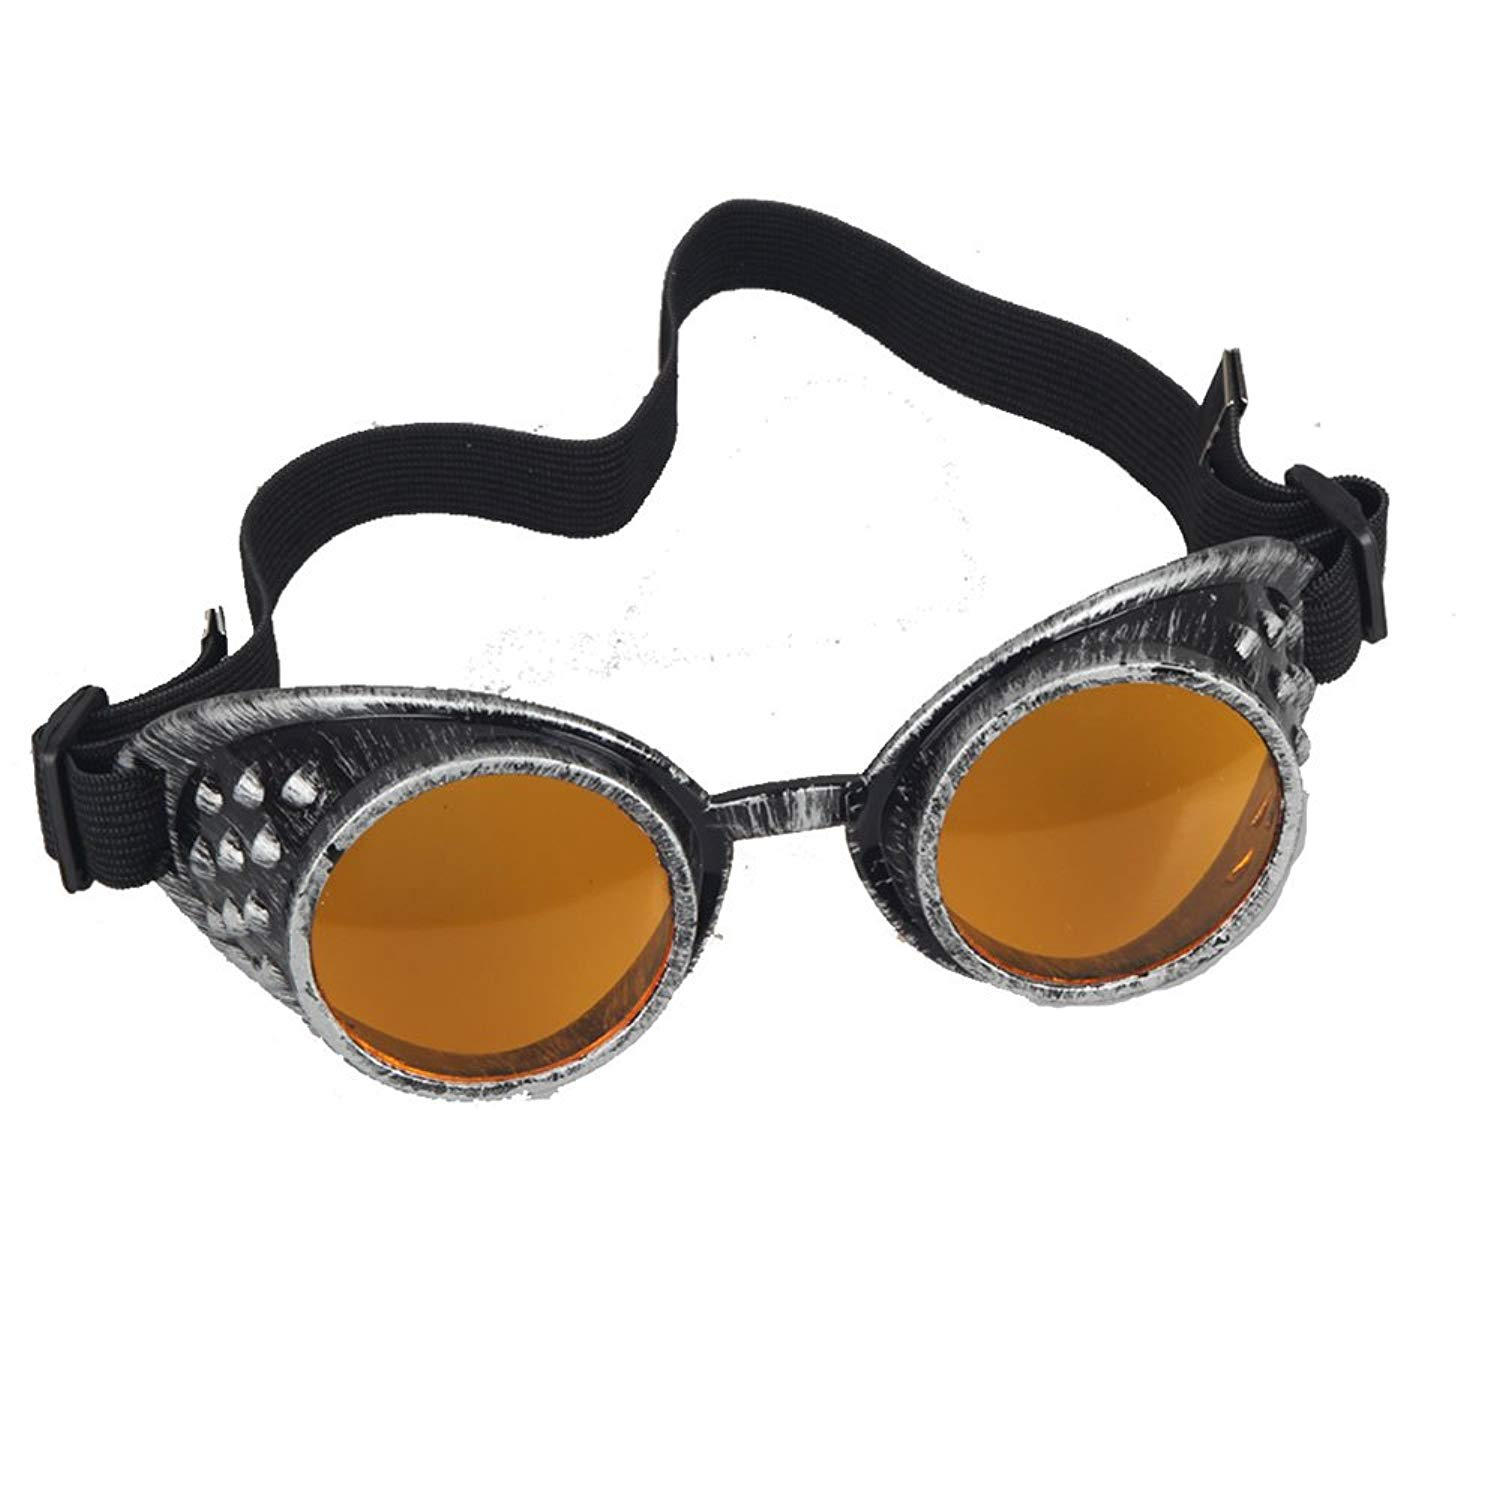 13f2ddab37d8 Get Quotations · Vintage Goggles Steampunk Glasses Welding Goth Cosplay  Halloween Party Goggles